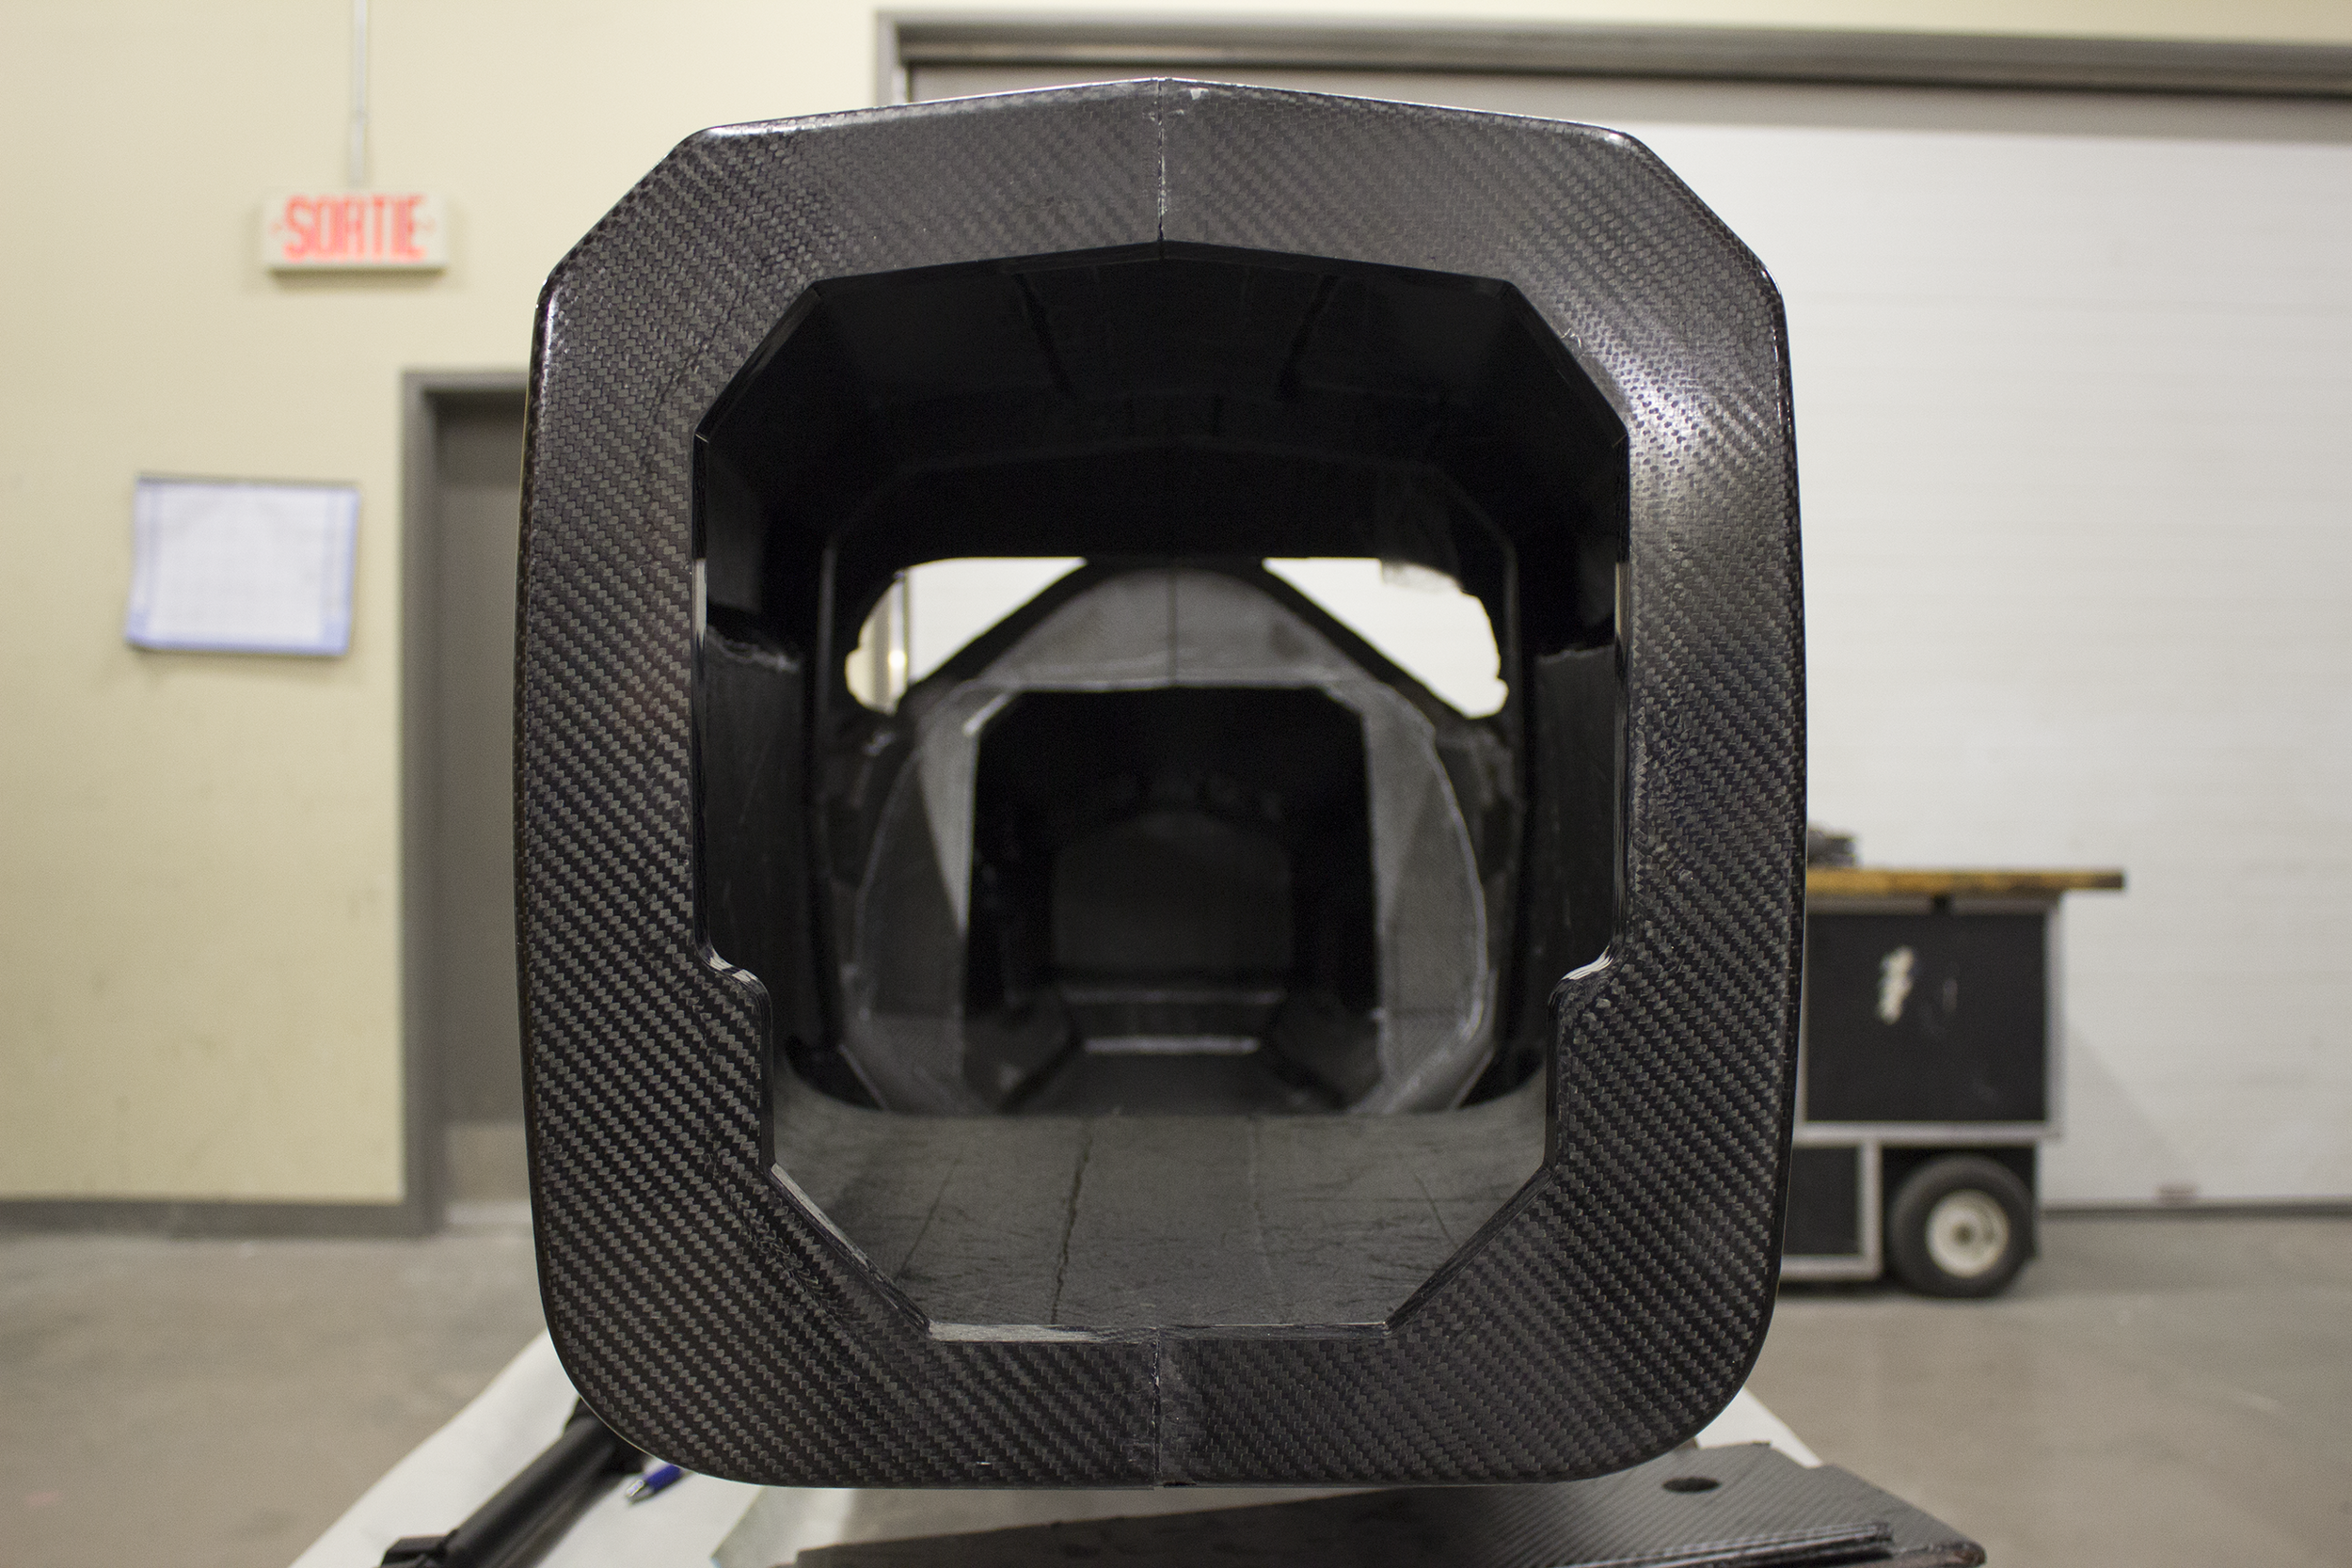 Une vue frontale du châssis de l'AXFF-16.  A front view of the AXFF-16's chassis.